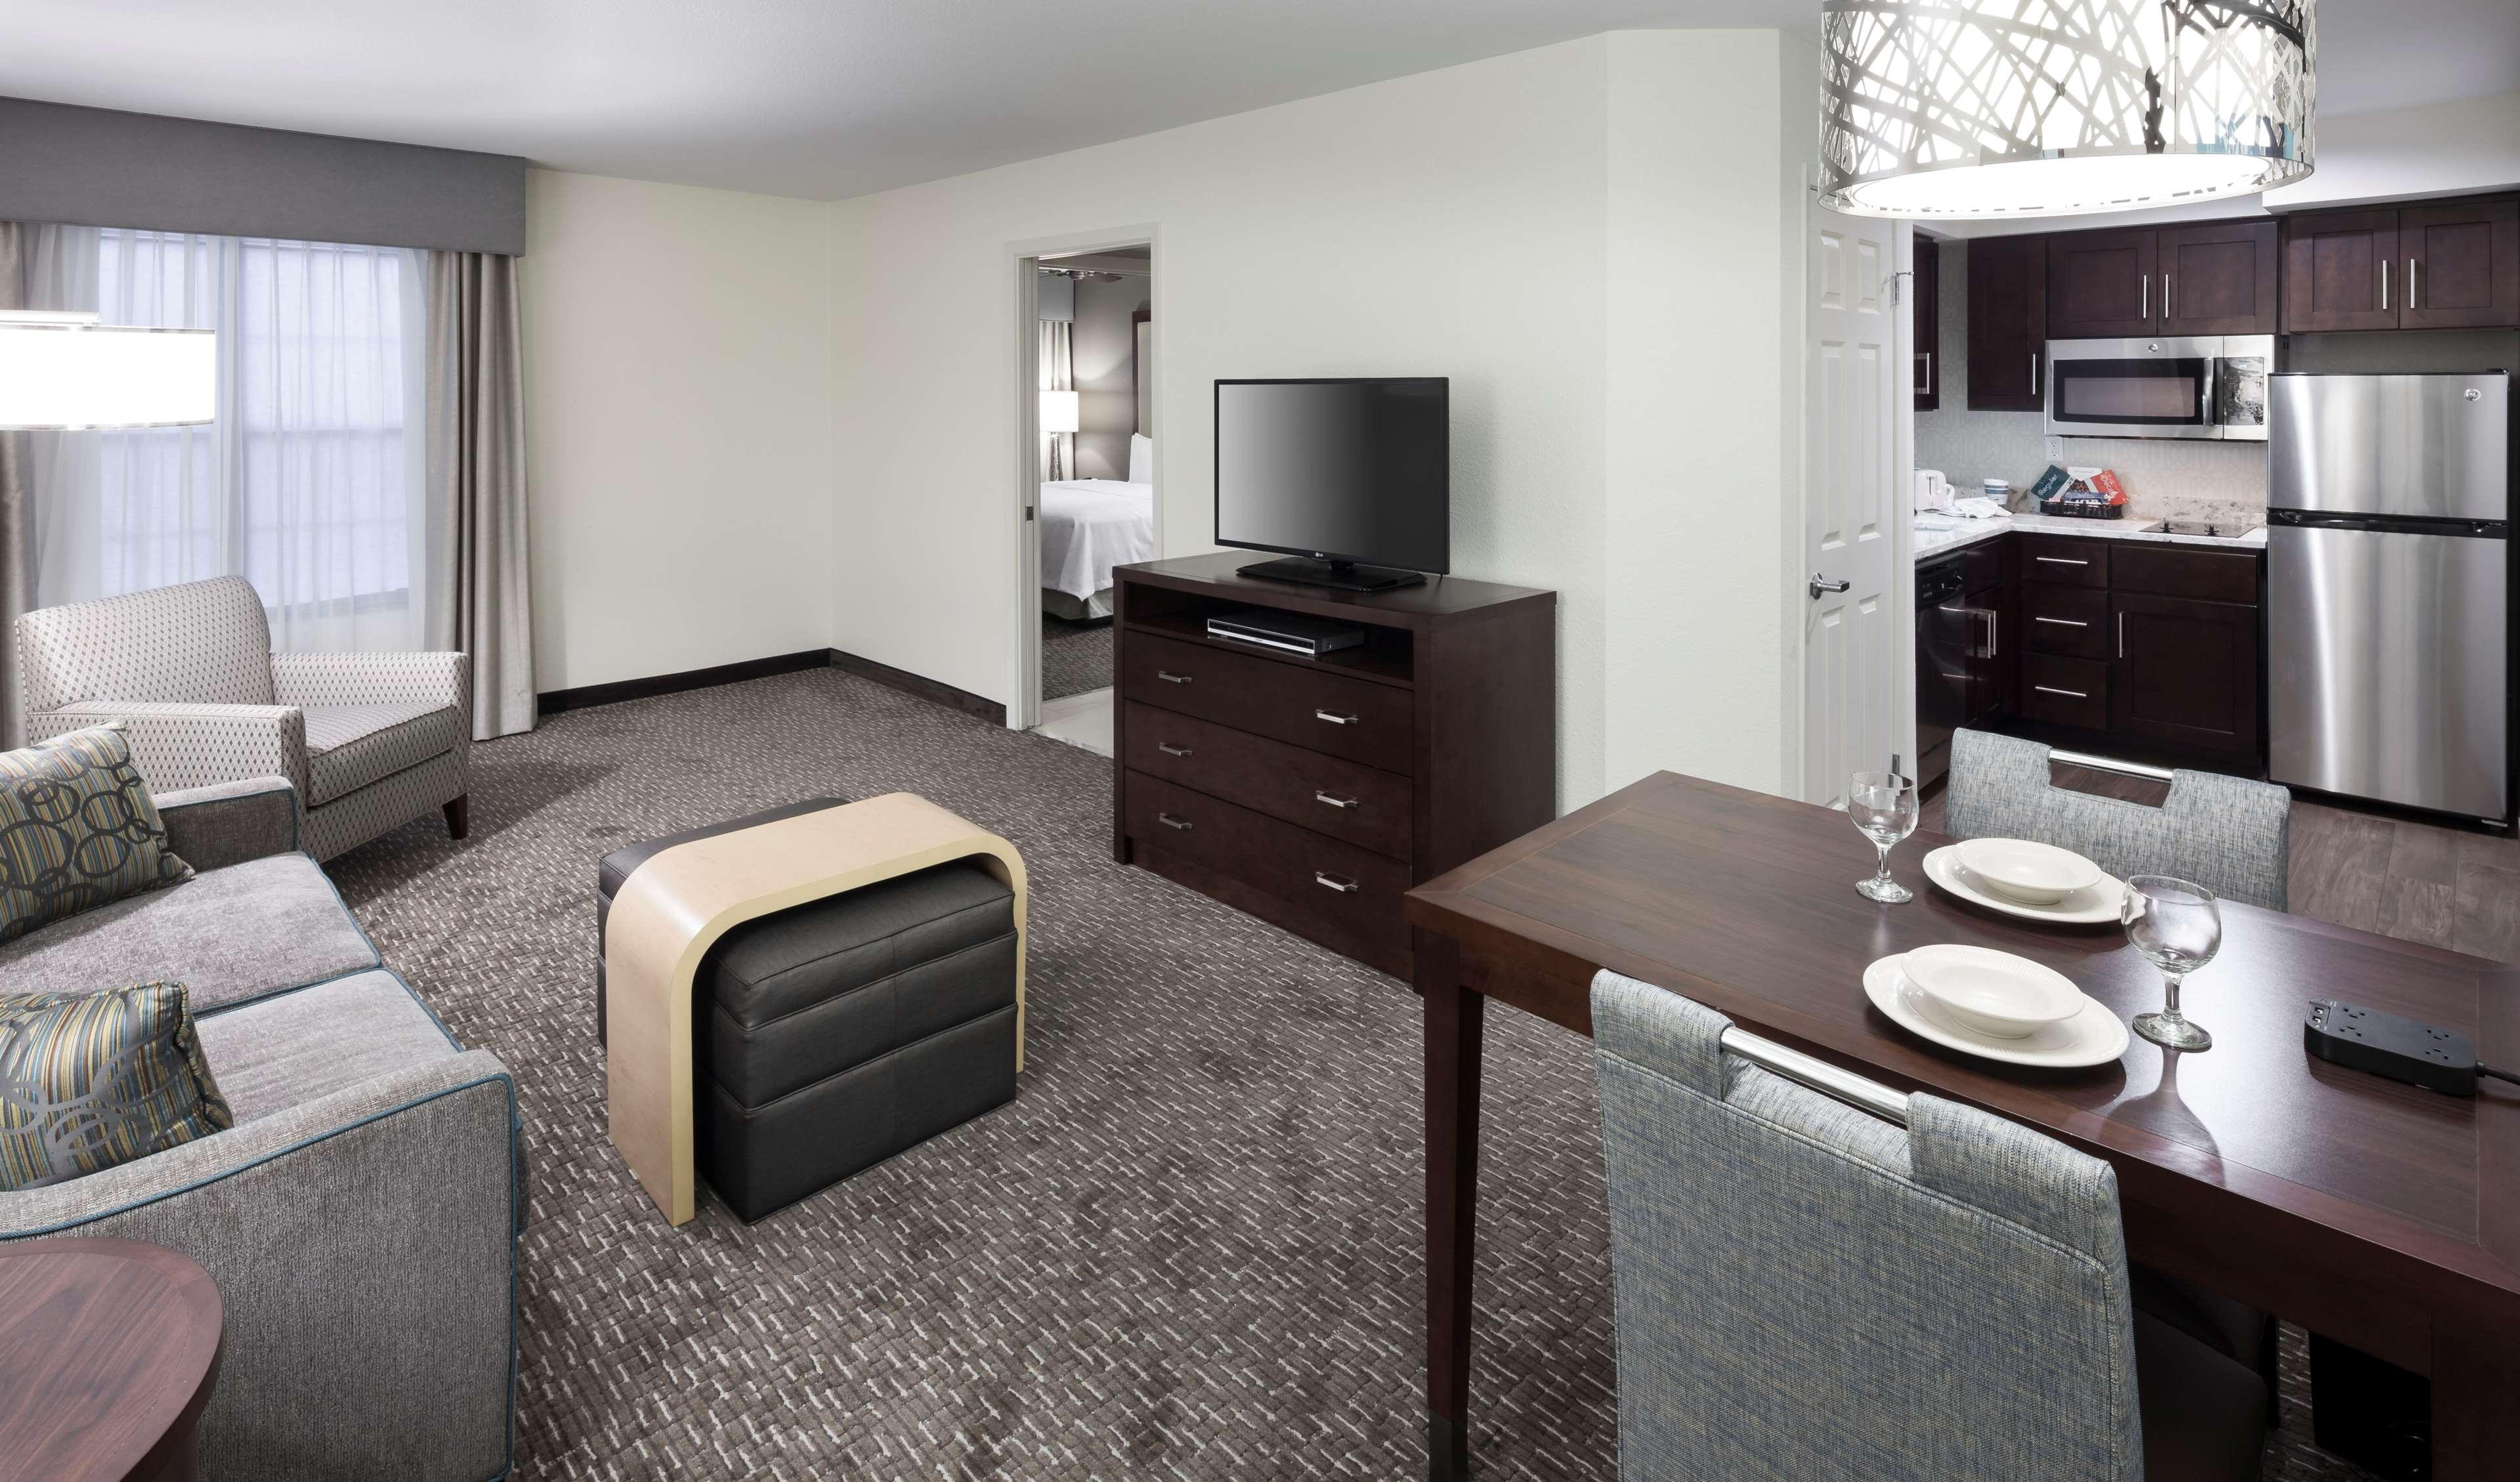 Homewood Suites by Hilton San Jose Airport-Silicon Valley image 13